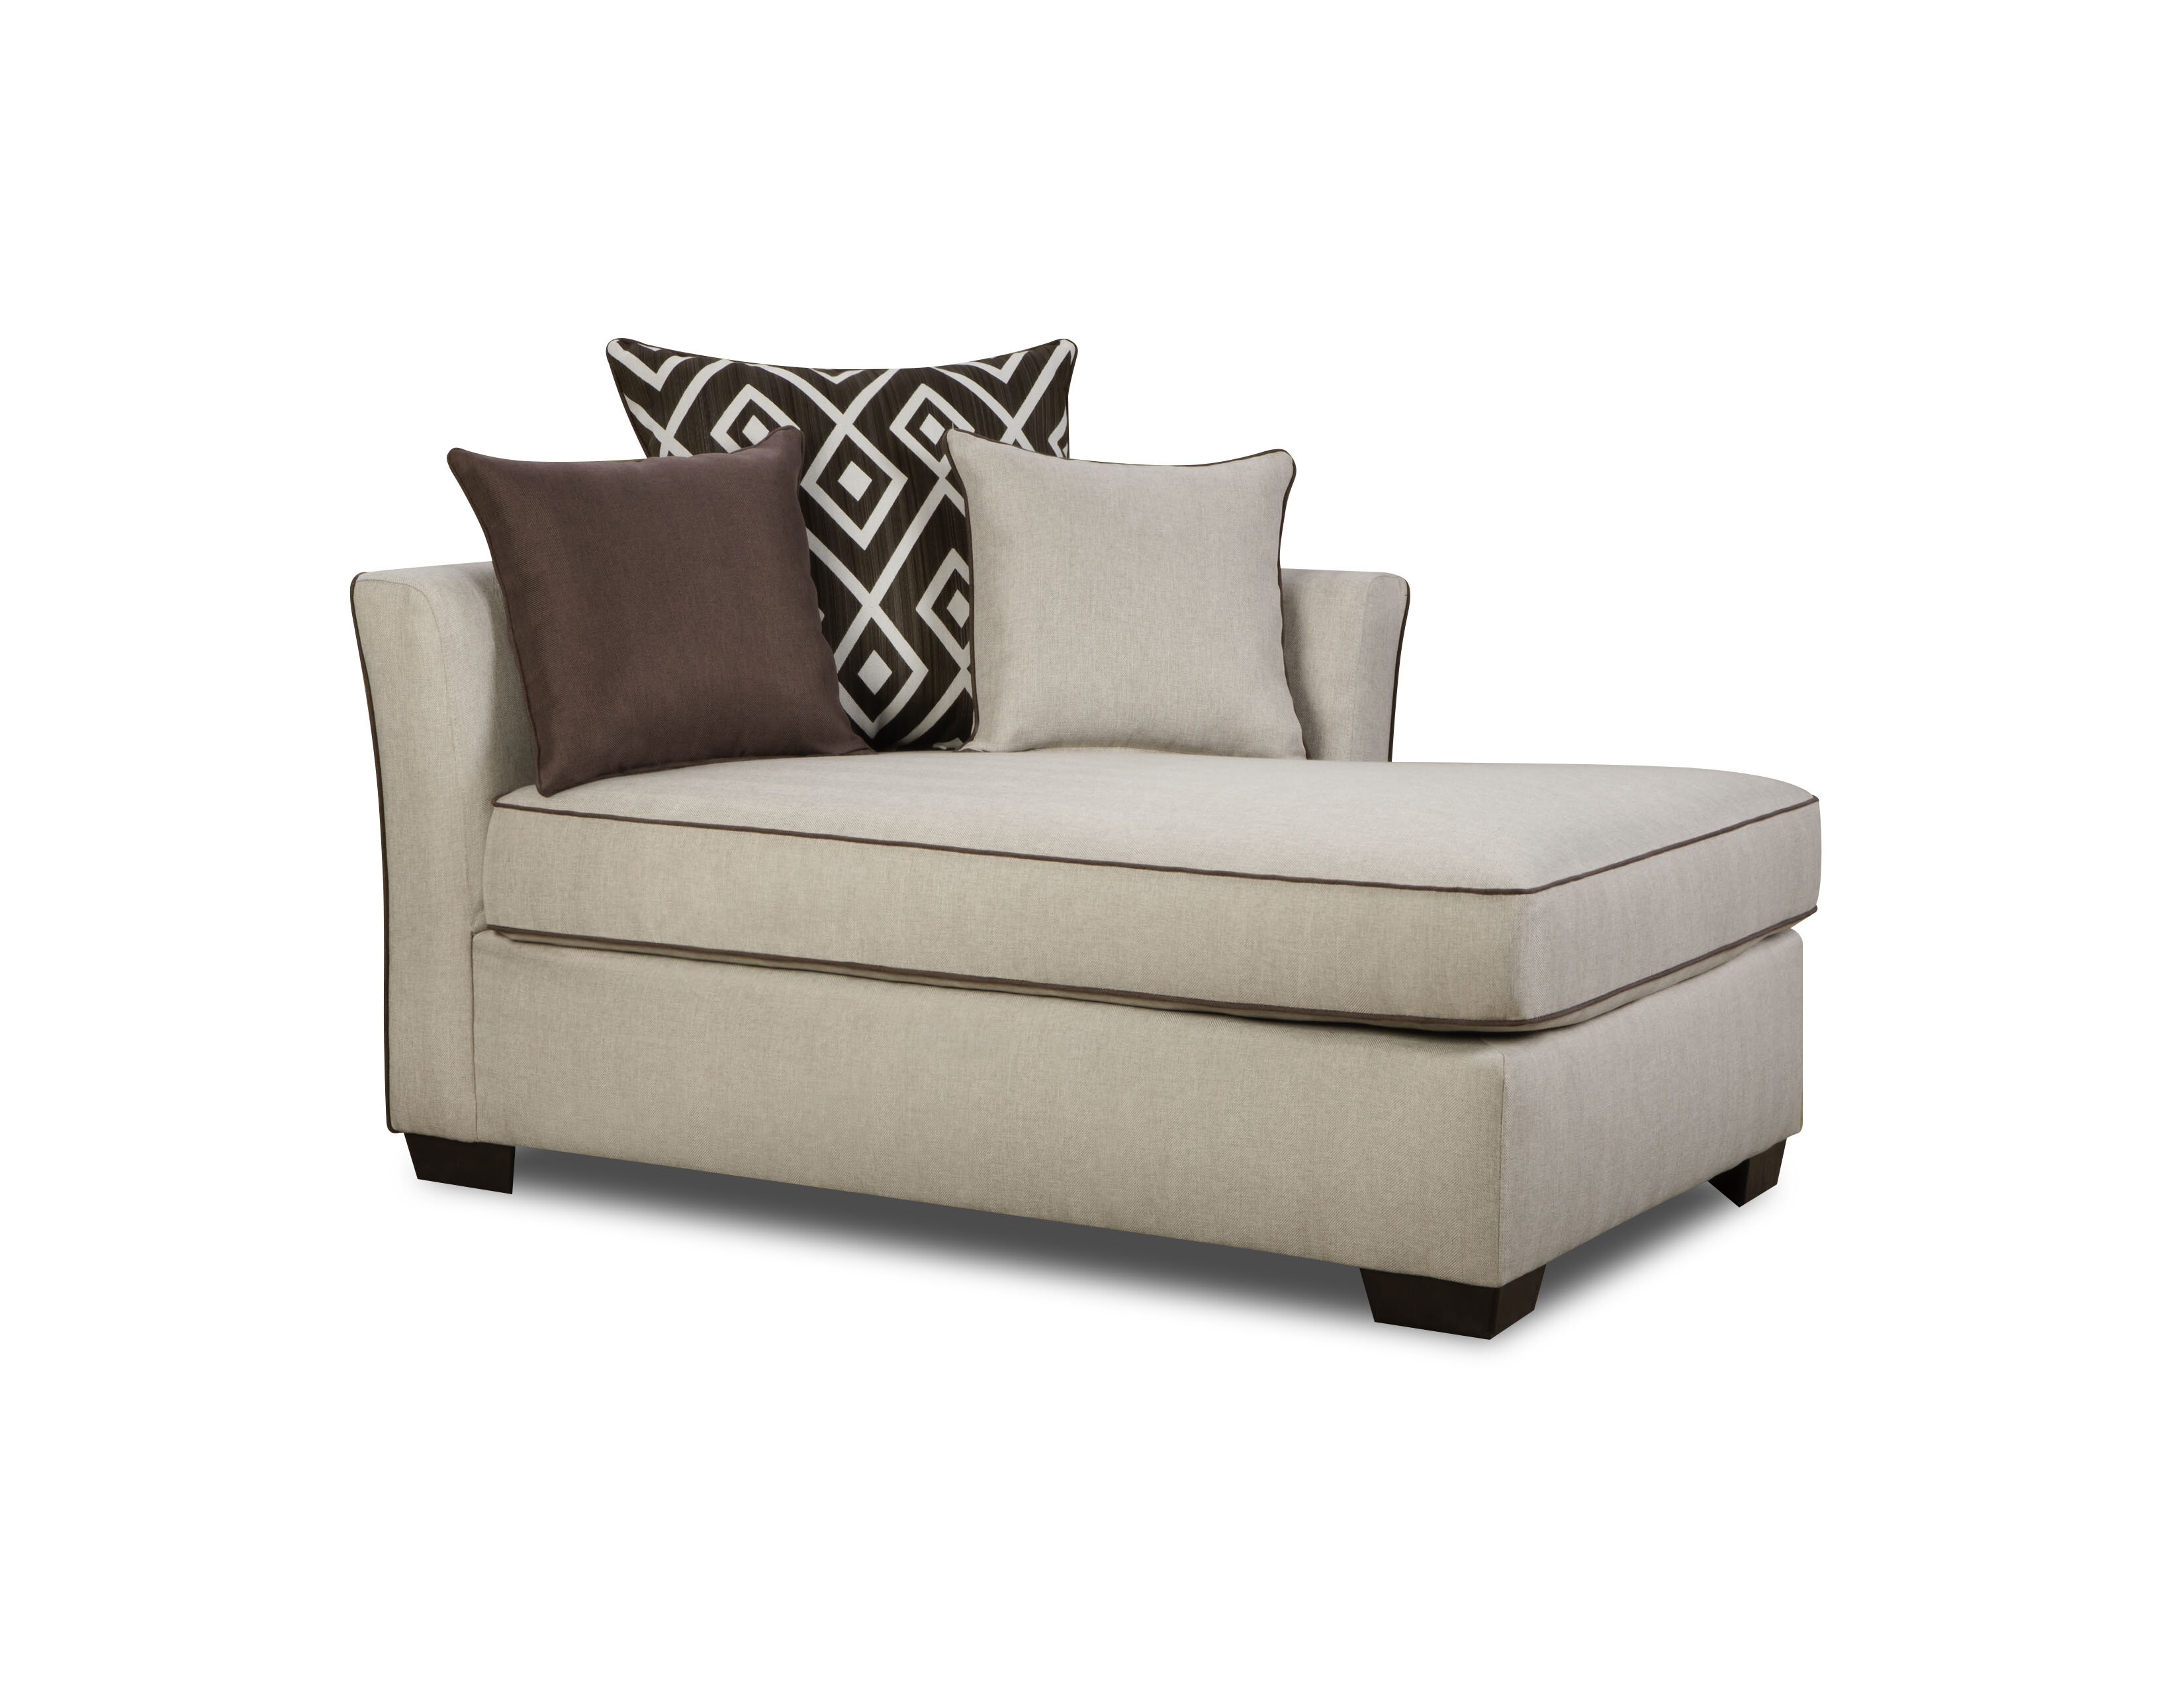 sofa chaise sleeper lounge lazar w open endicott full paragon product loveseat with